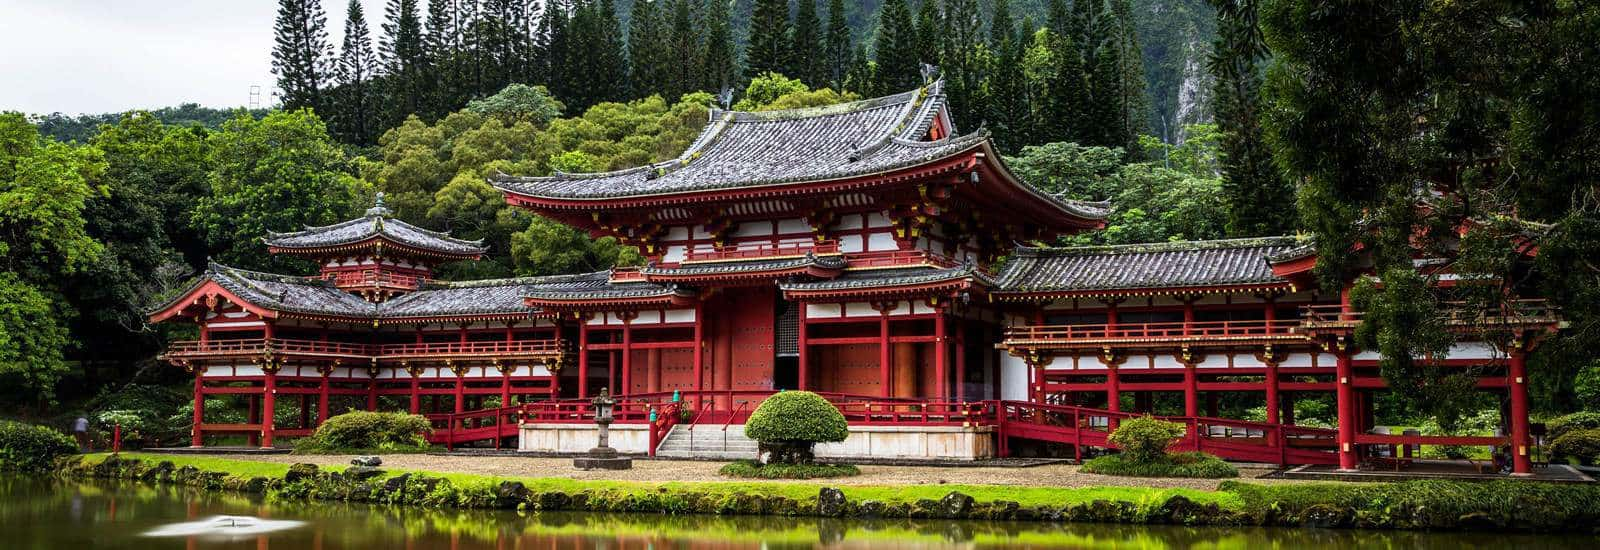 Chinese palace on a rivers edge